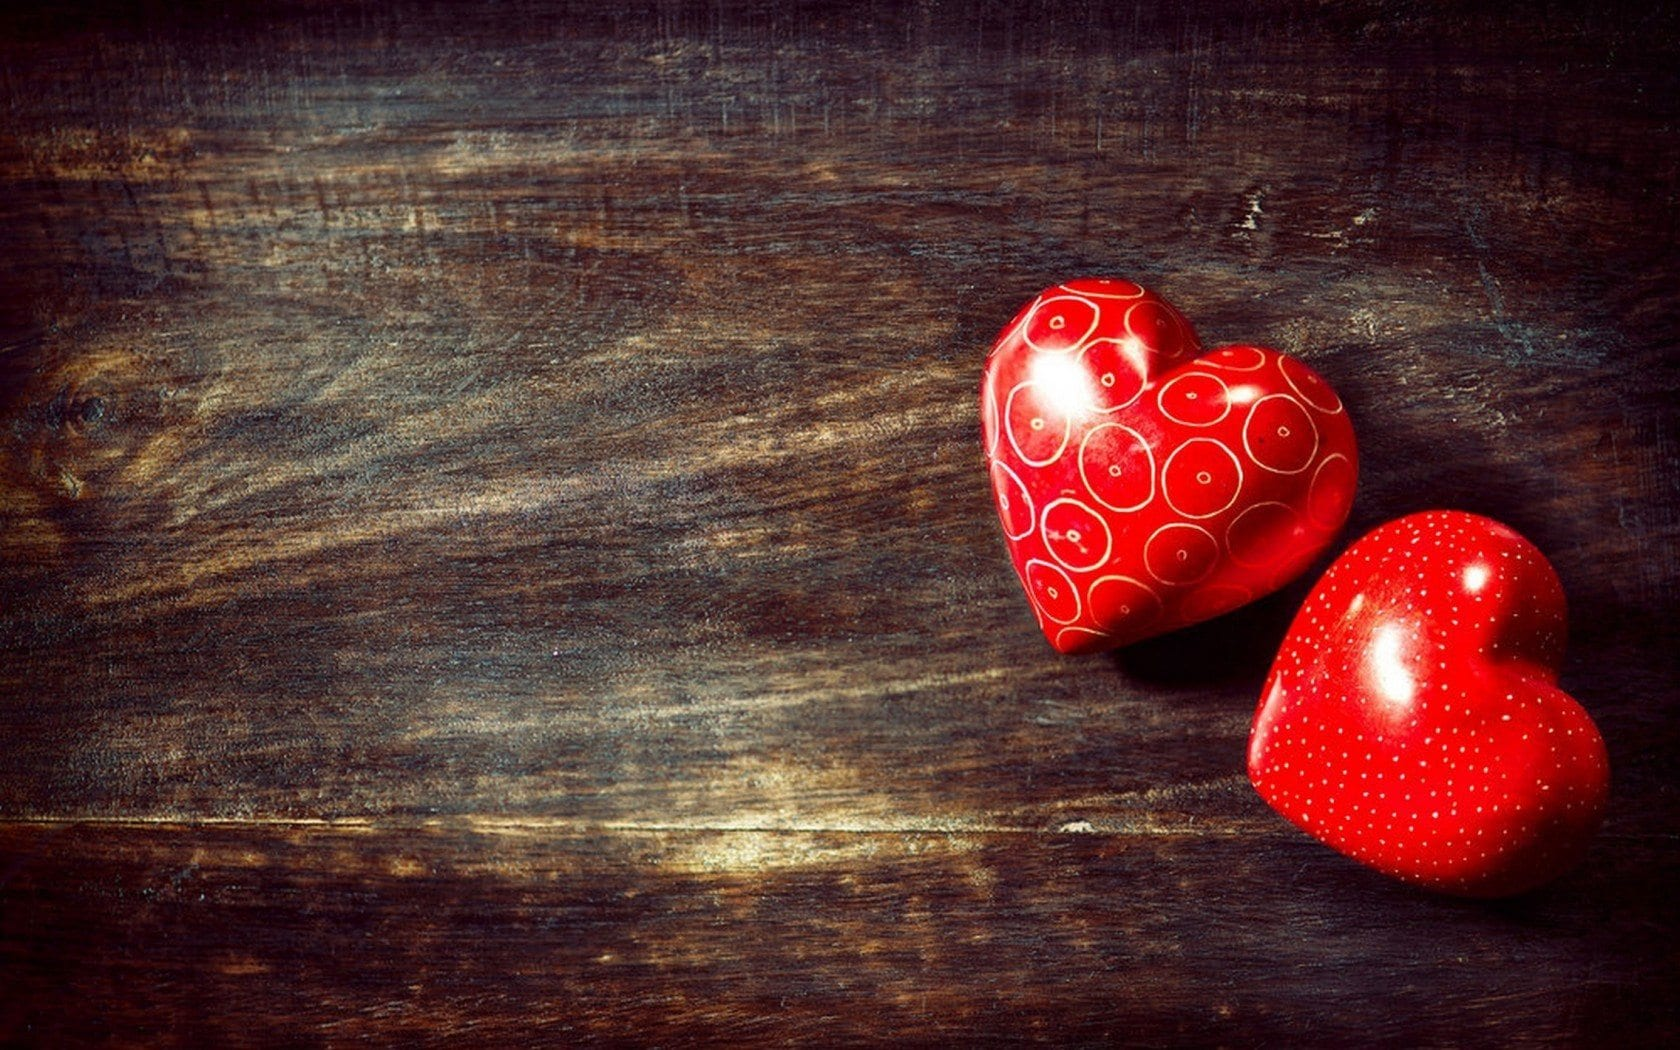 Love Z Wallpaper : Love Images / Love HD Wallpaper